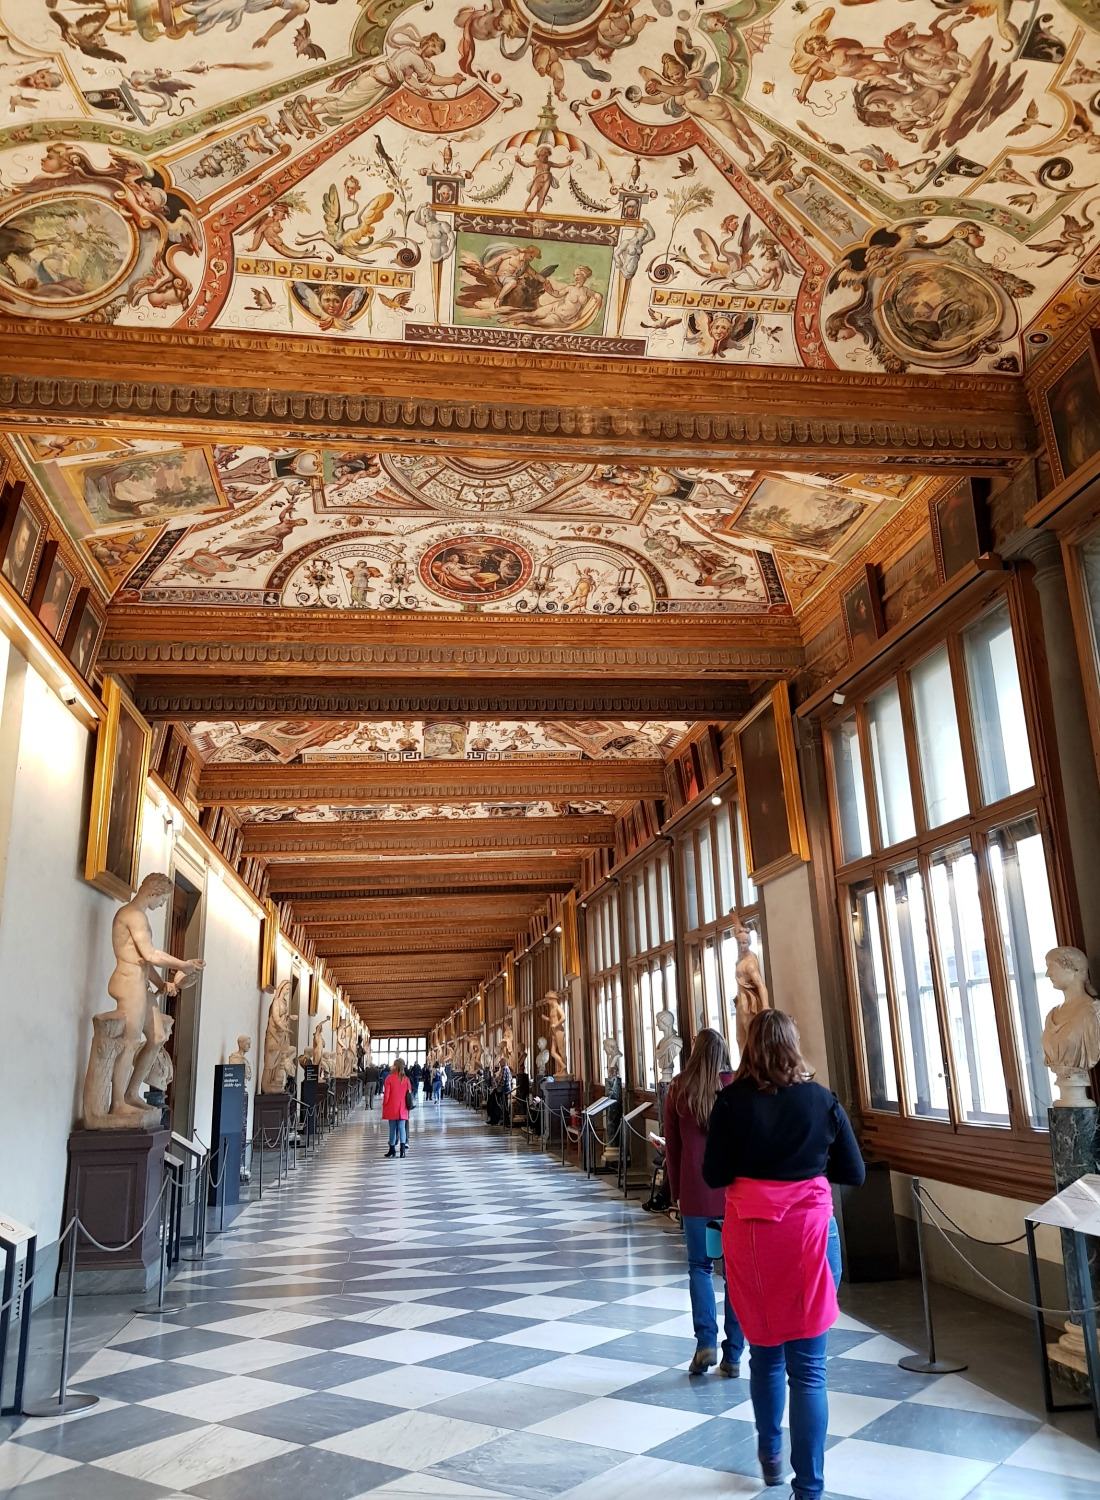 The decorative gallery at the Uffizi museum with its painted ceiling - my Uffizi tour with kids and gelato making day in Florence